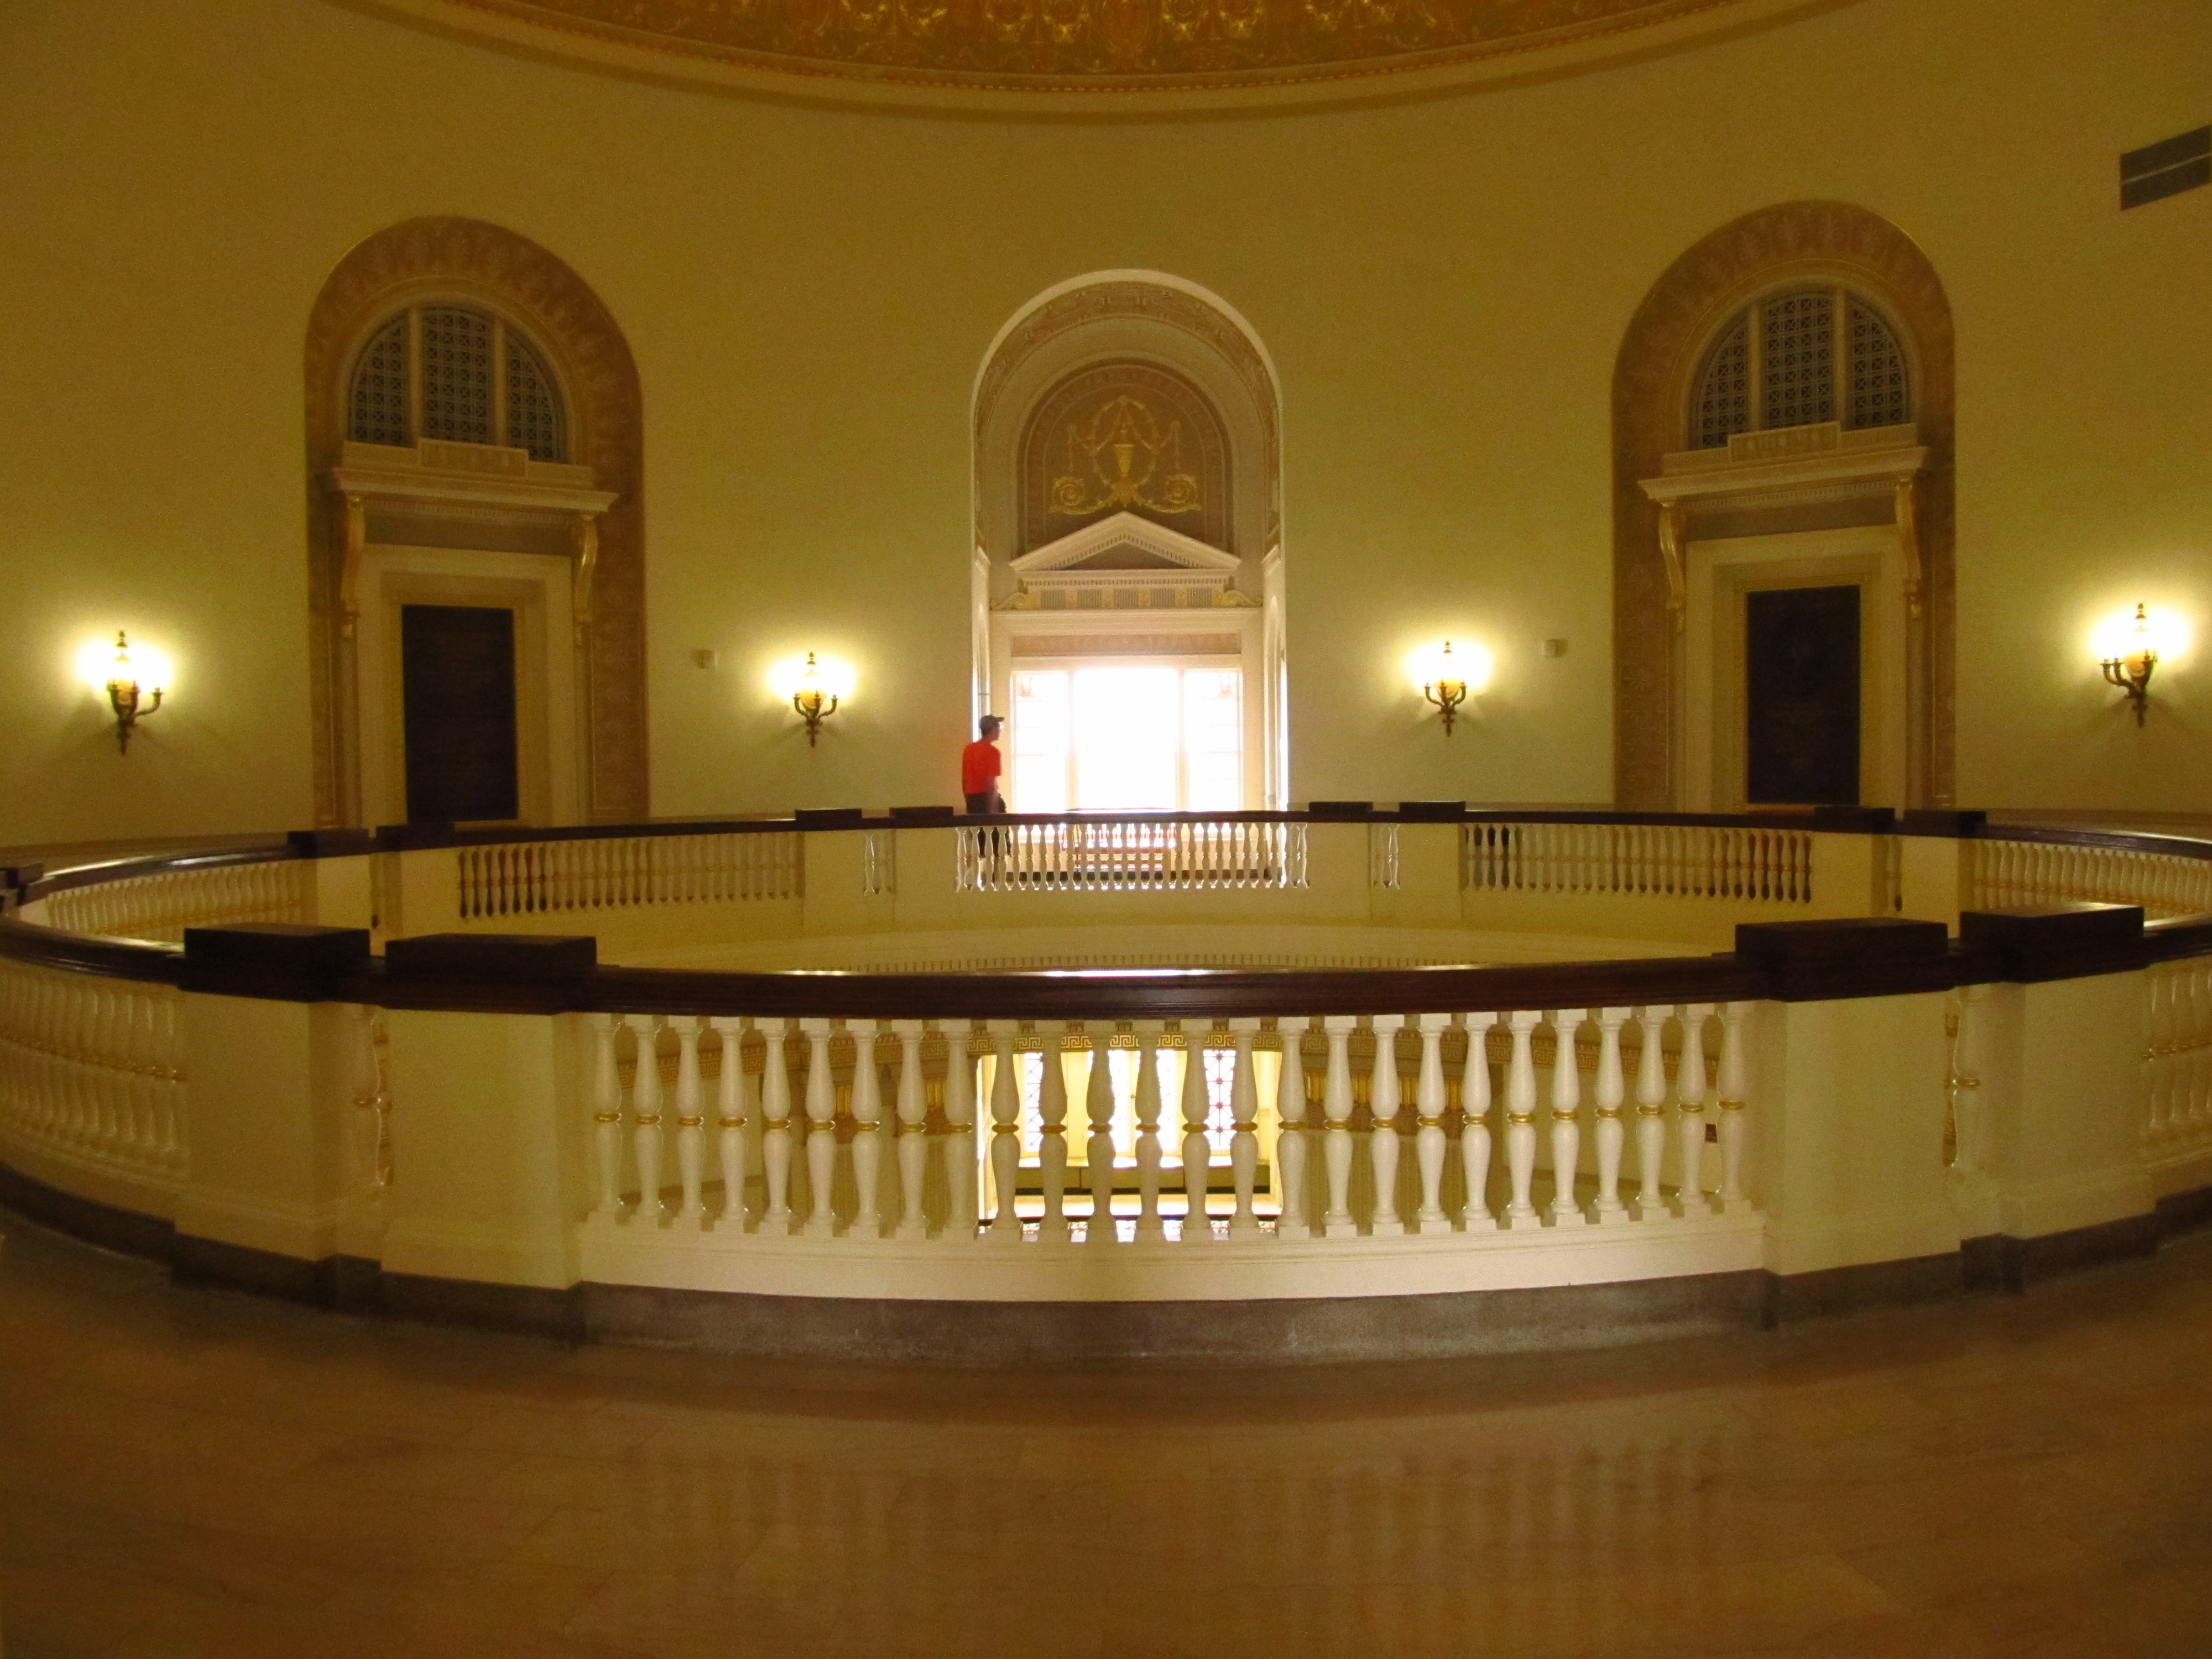 Dallas Hall's rotunda as seen from the third floor.